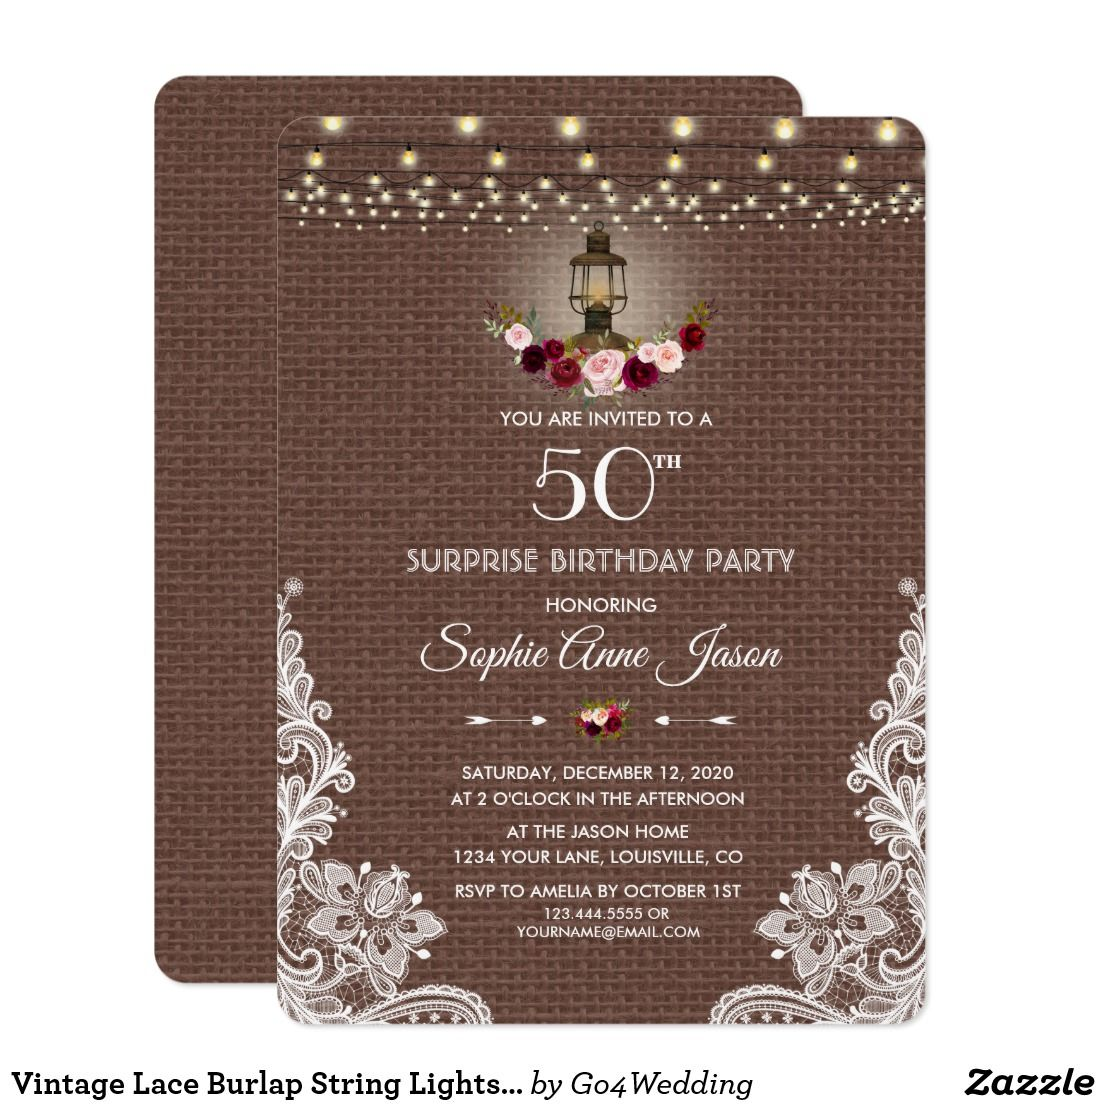 Vintage Lace Burlap String Lights 50th Birthday Card | Invitations ...